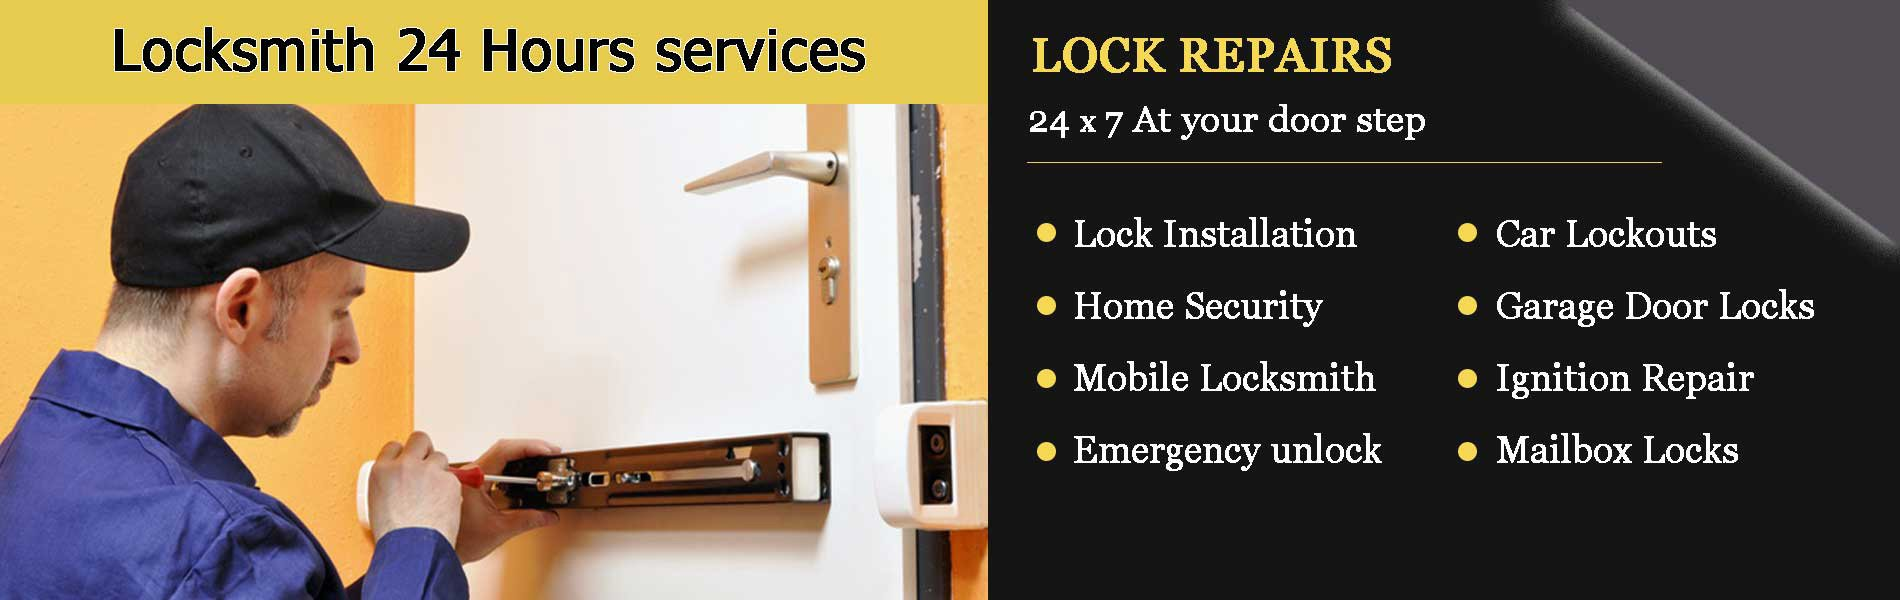 City Locksmith Store Happy Valley, OR 503-403-6313